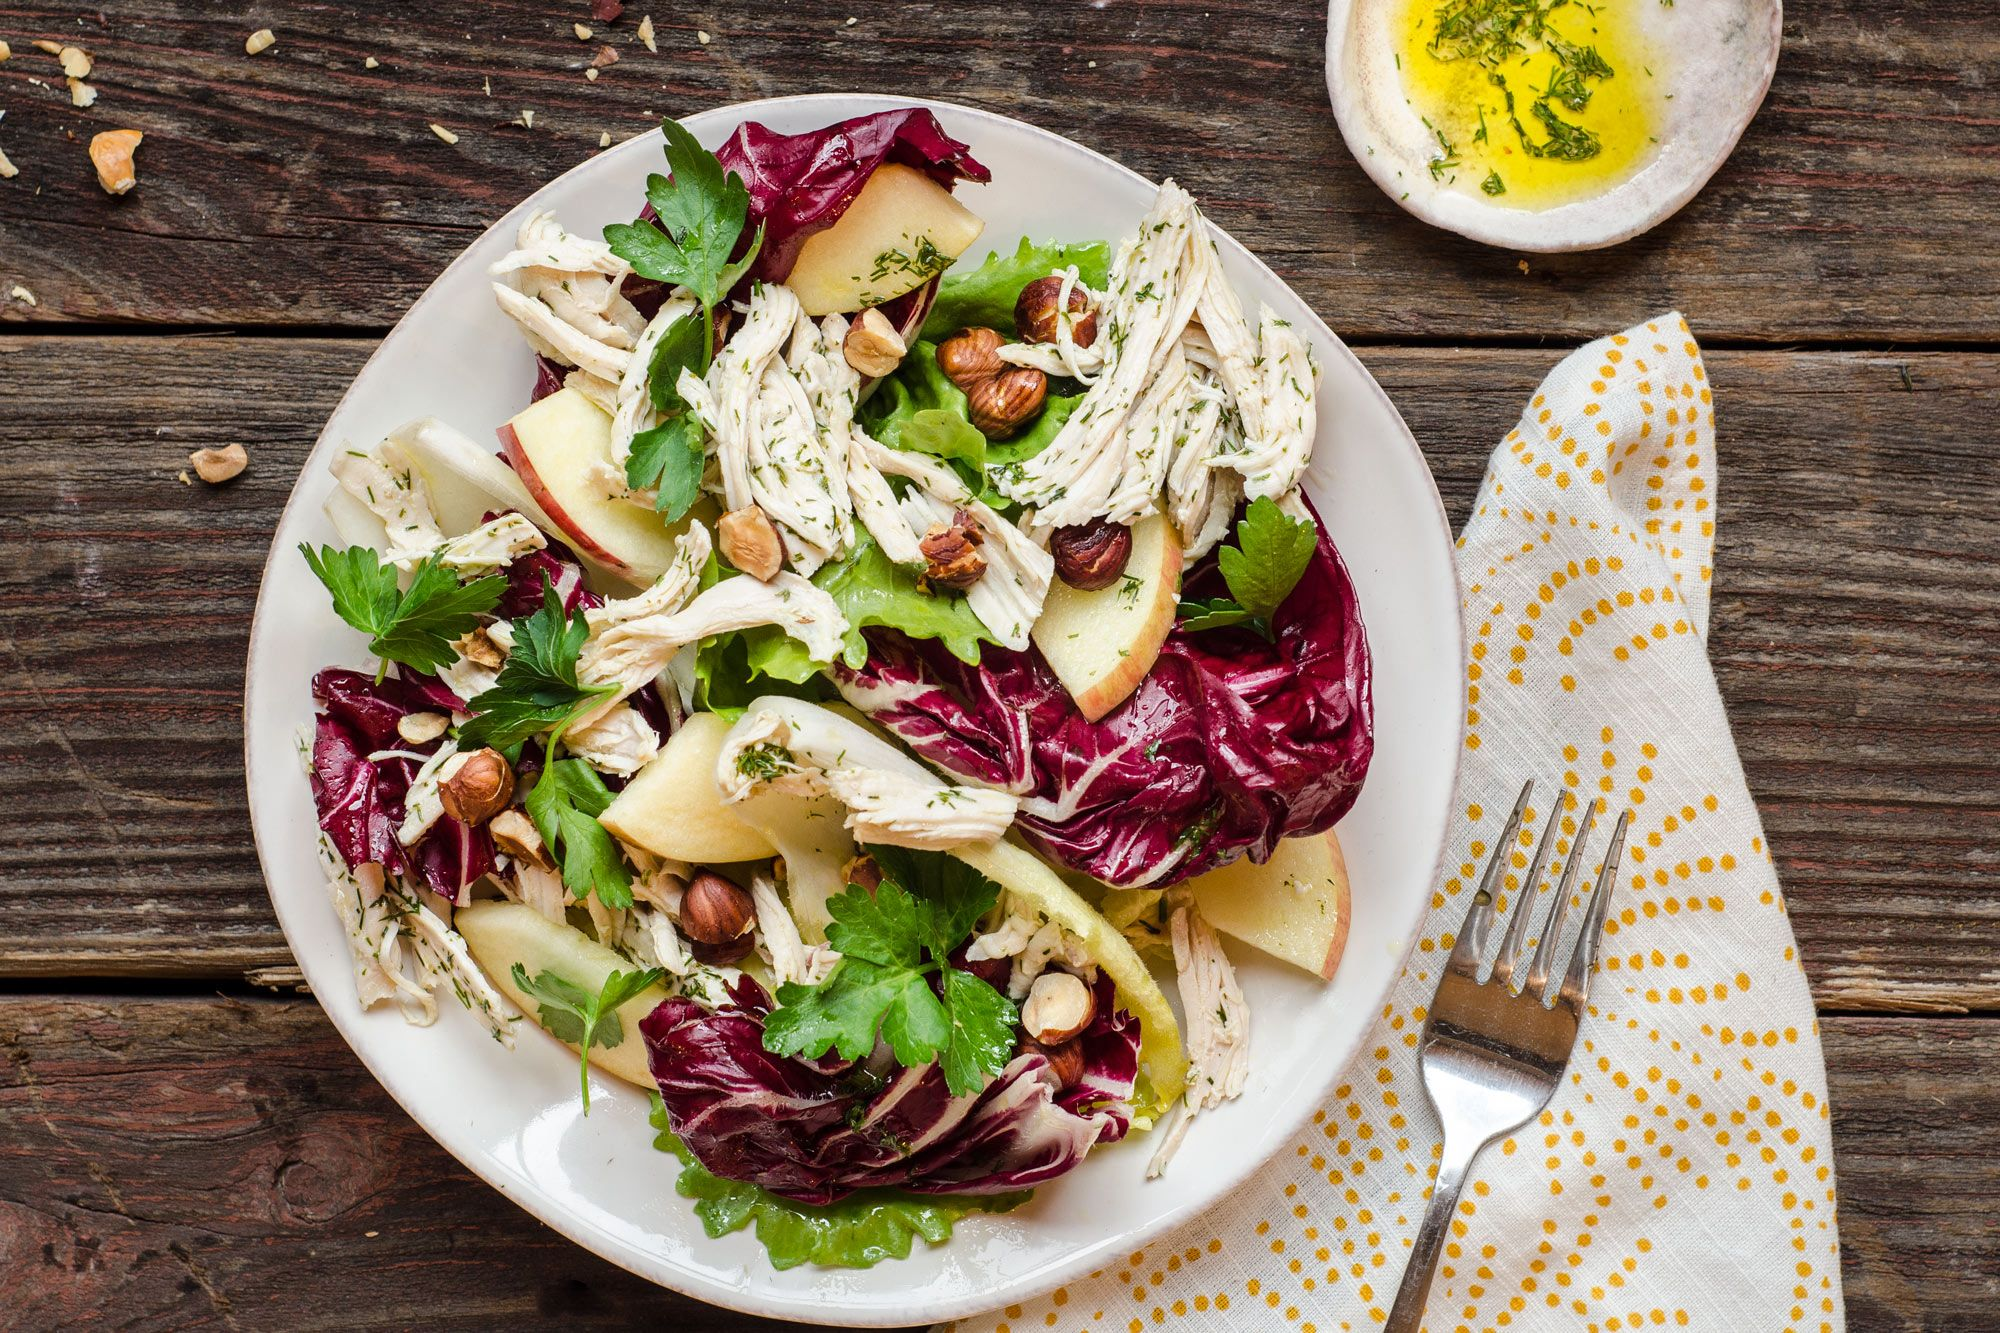 Chicken and chicory salad with dill and toasted hazelnuts